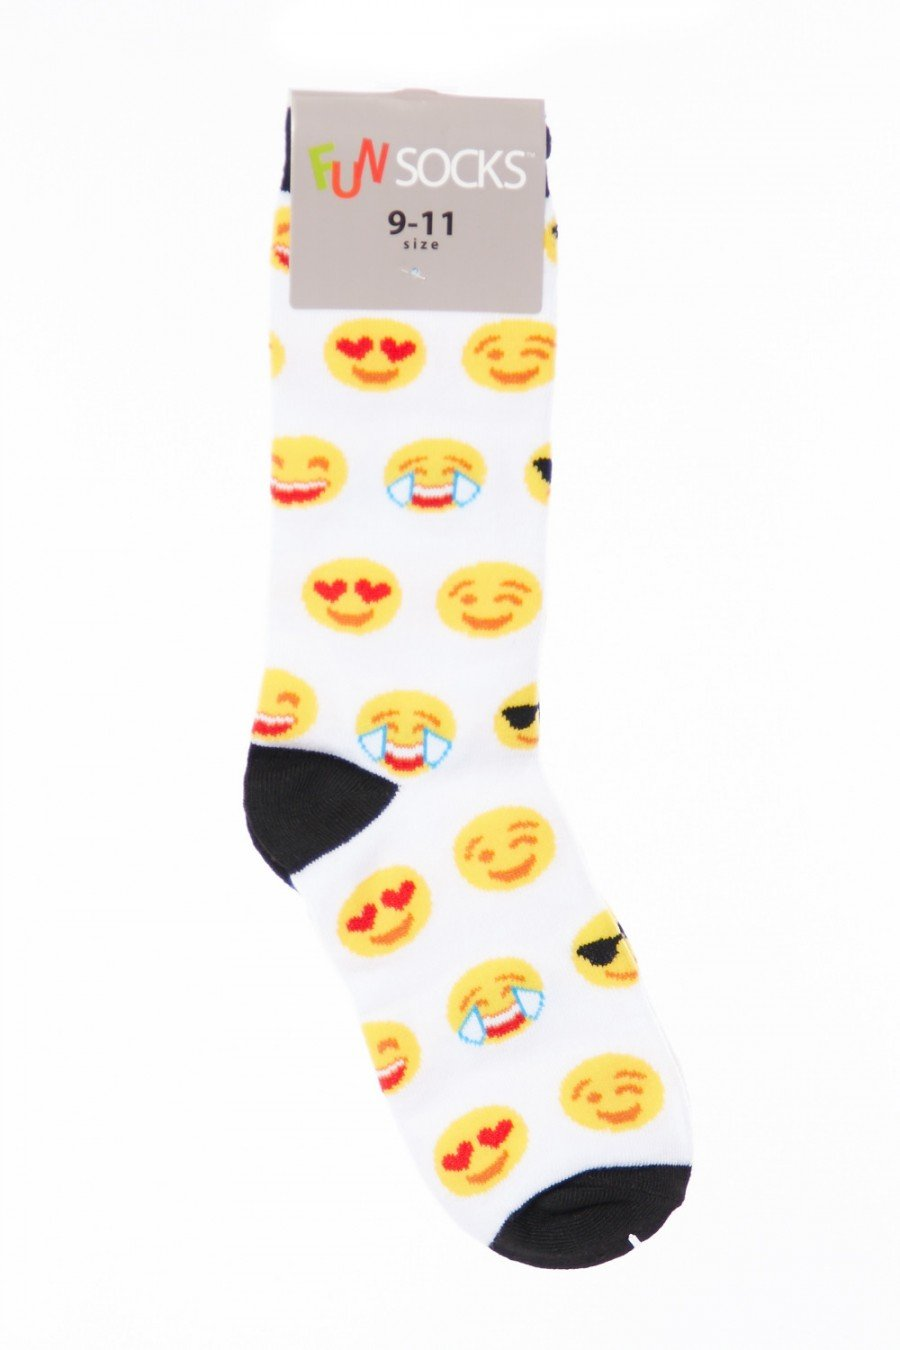 Womens Cute Funny Emoji Print Color Block Crew & Knee High Socks SR511 (Both Style All Colors)